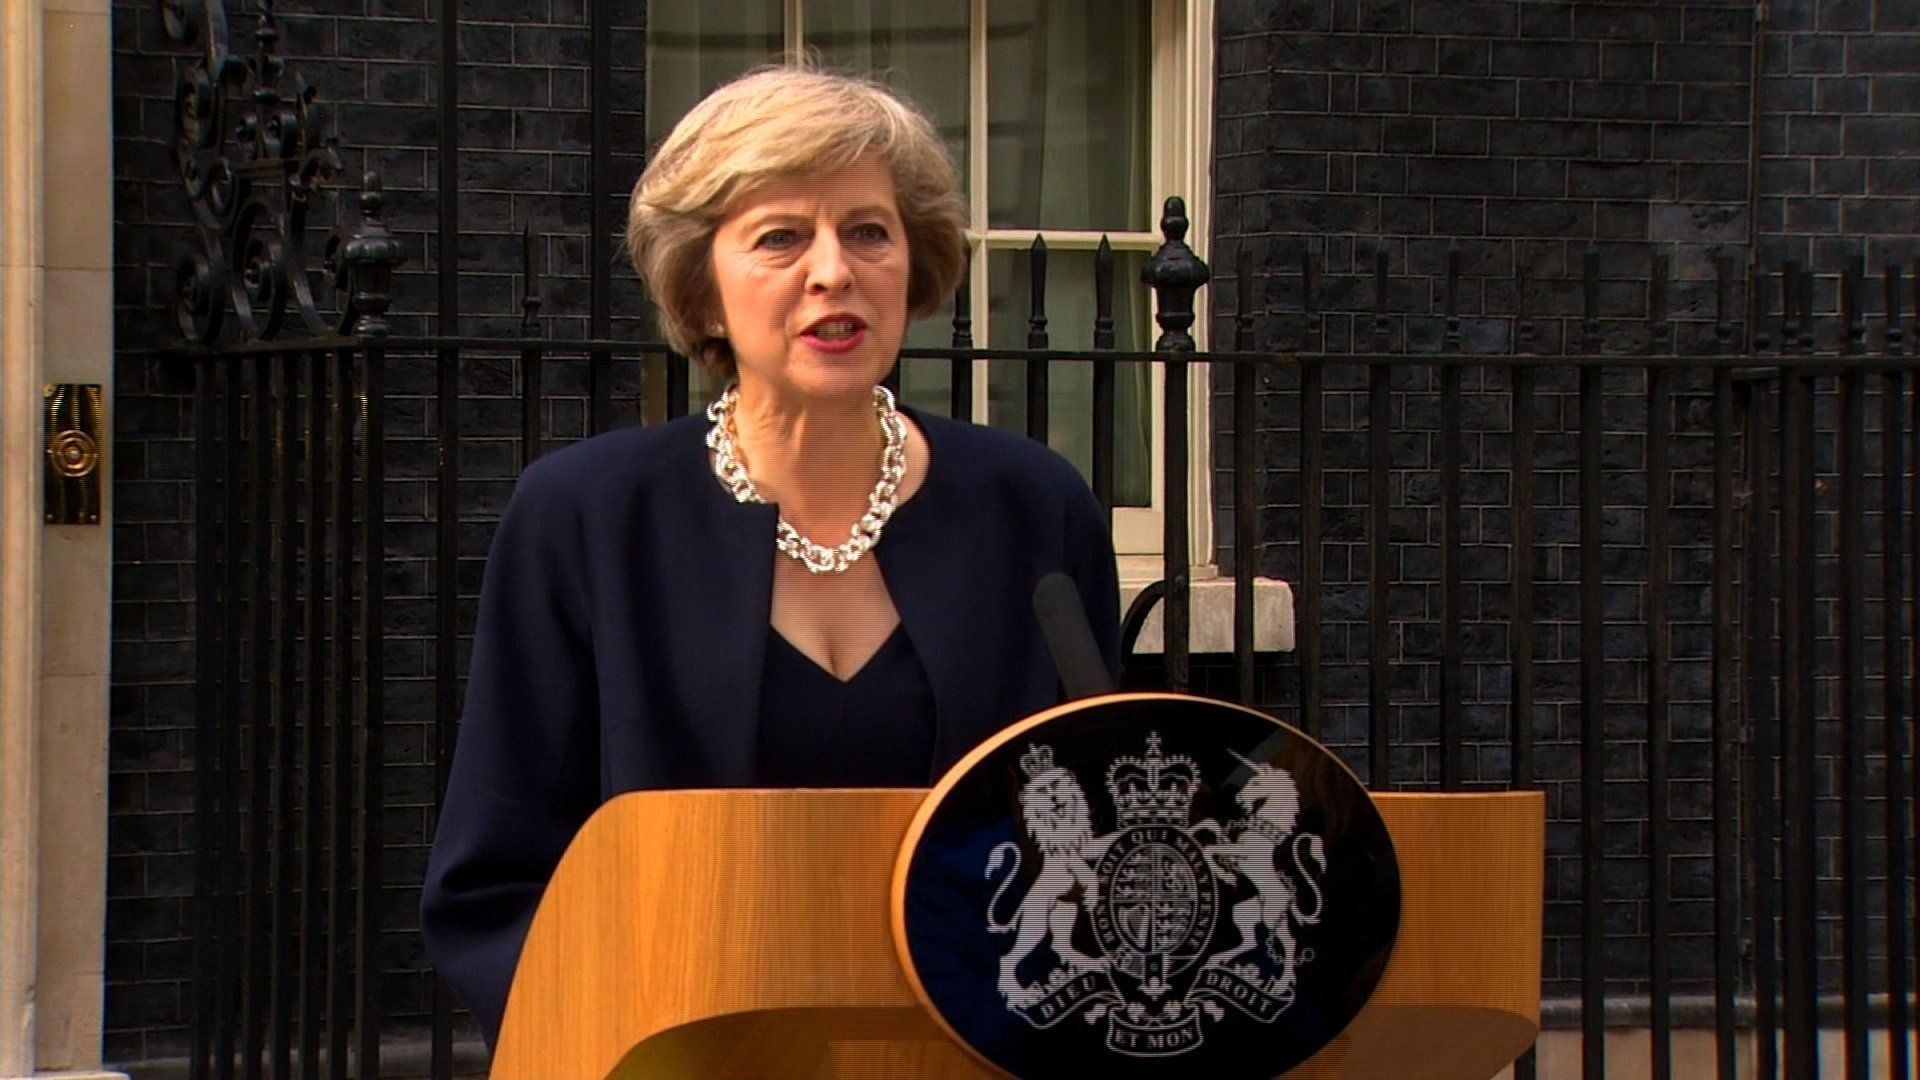 Theresa May became the 76th prime minister of the United Kingdom Wednesday. But despite over two decades in politics, May is largely unknown on the other side of the Atlantic.